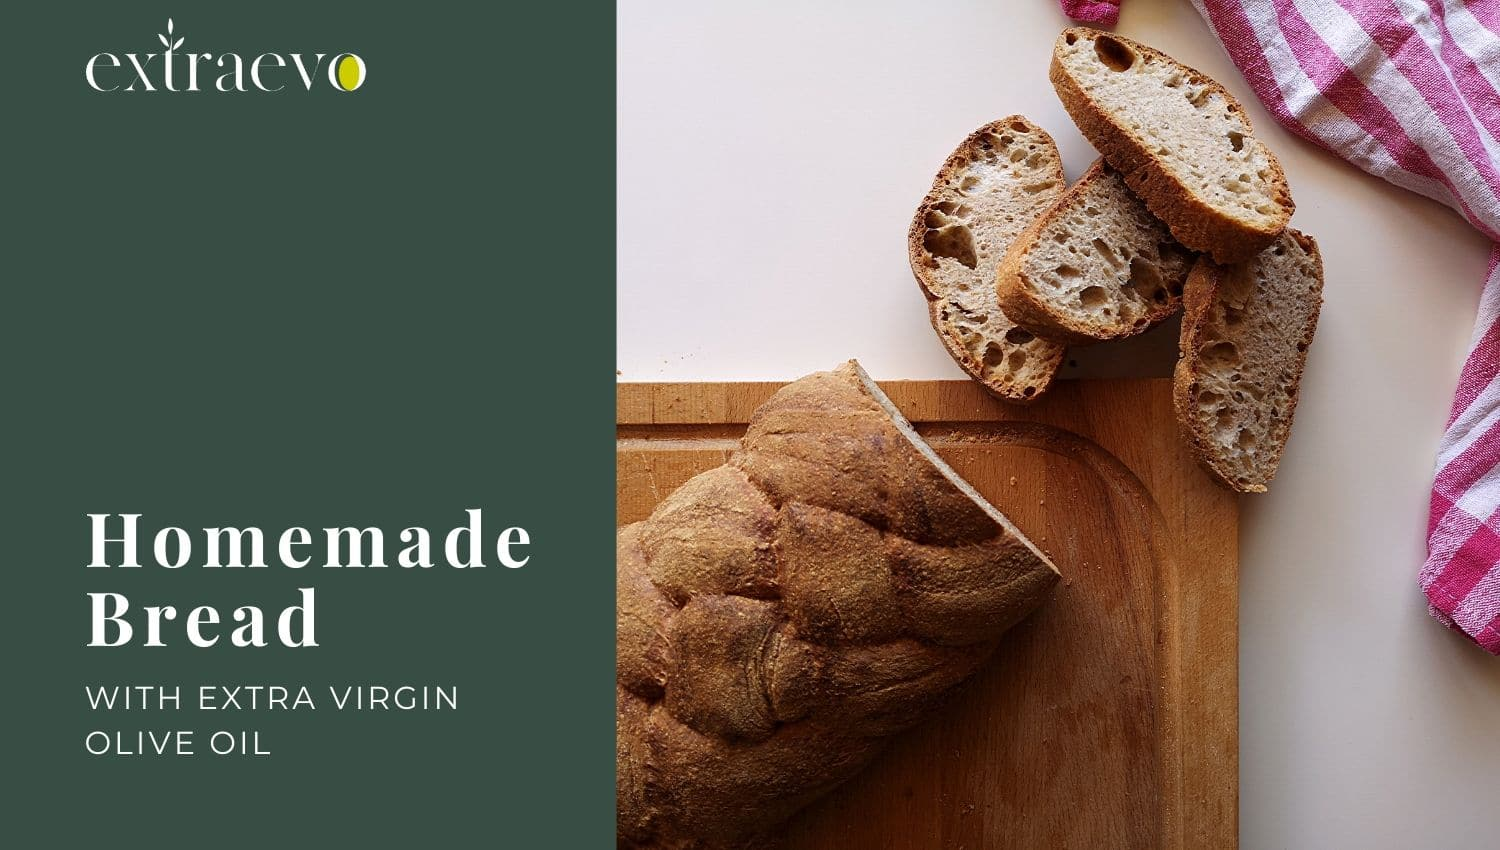 Homemade Bread with Olive Oil